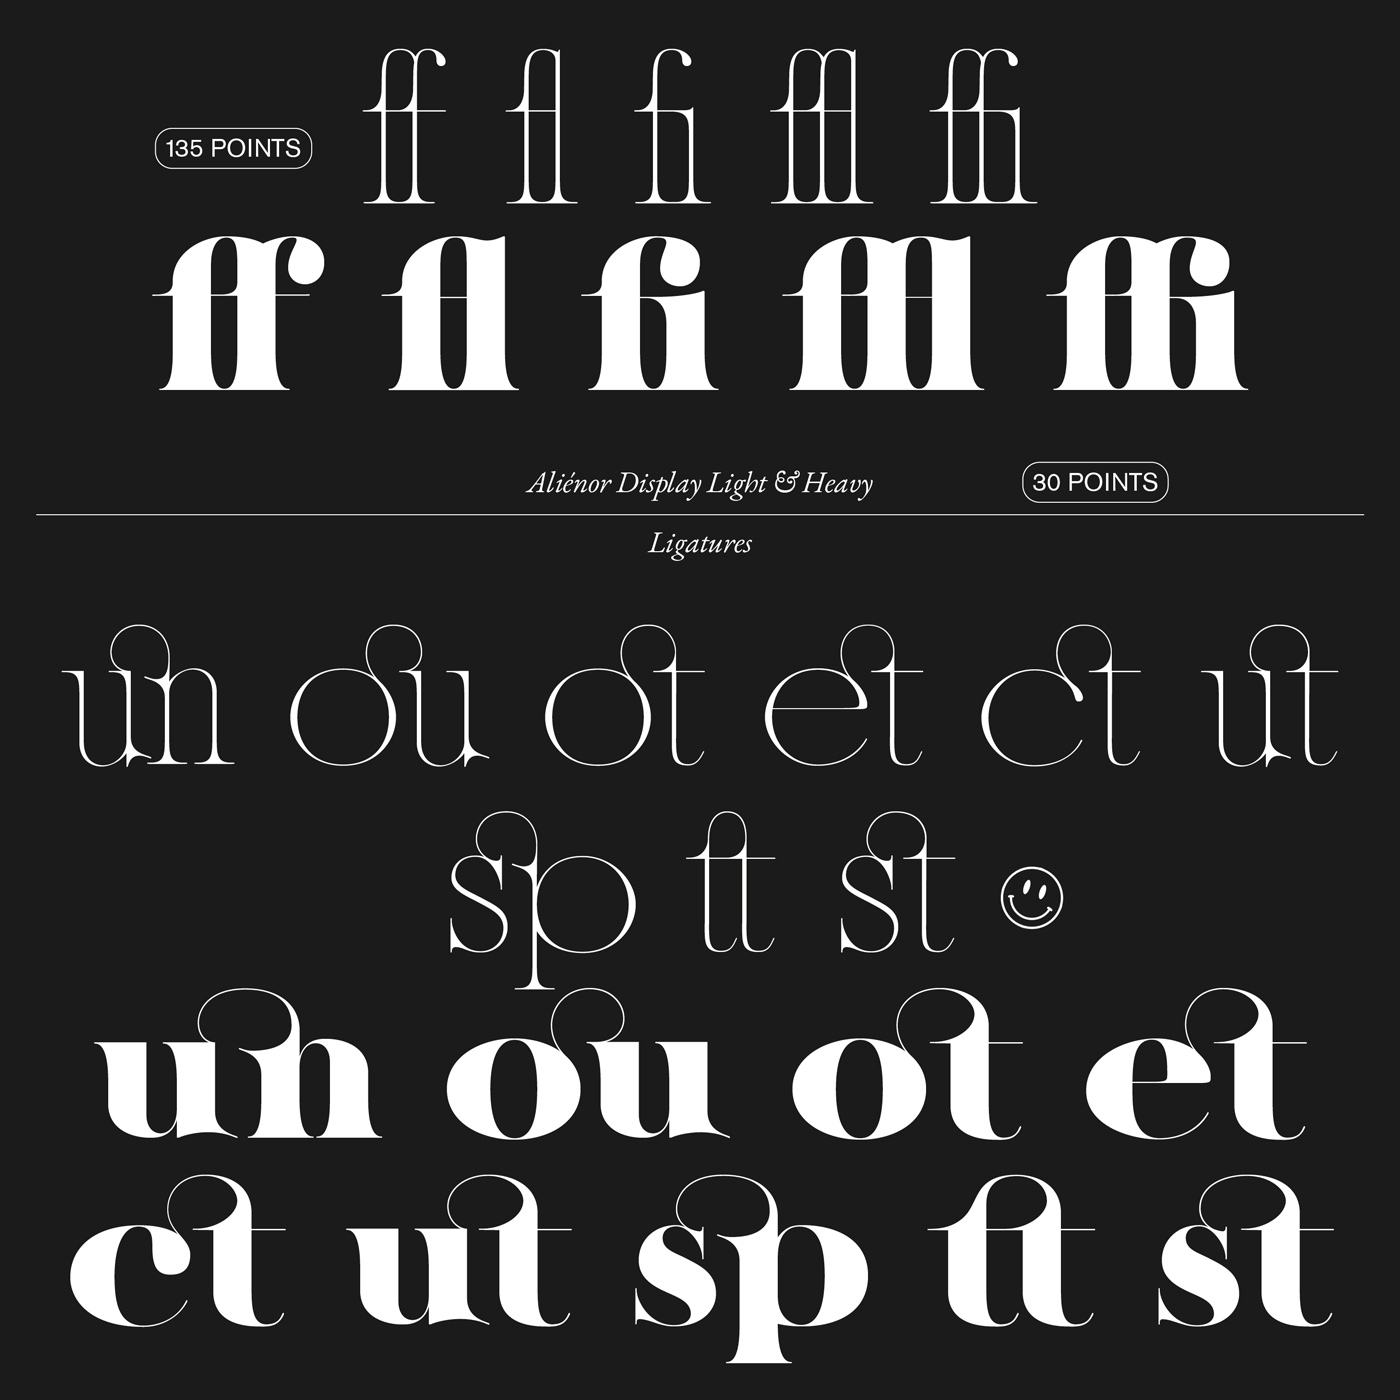 07 collide24 Lou Rainaldo Anne Dauphine Borione - The typeface 'Aliénor' by Anne-Dauphine Borione and Lou Rainaldo is a mixture of elegance and extravagance